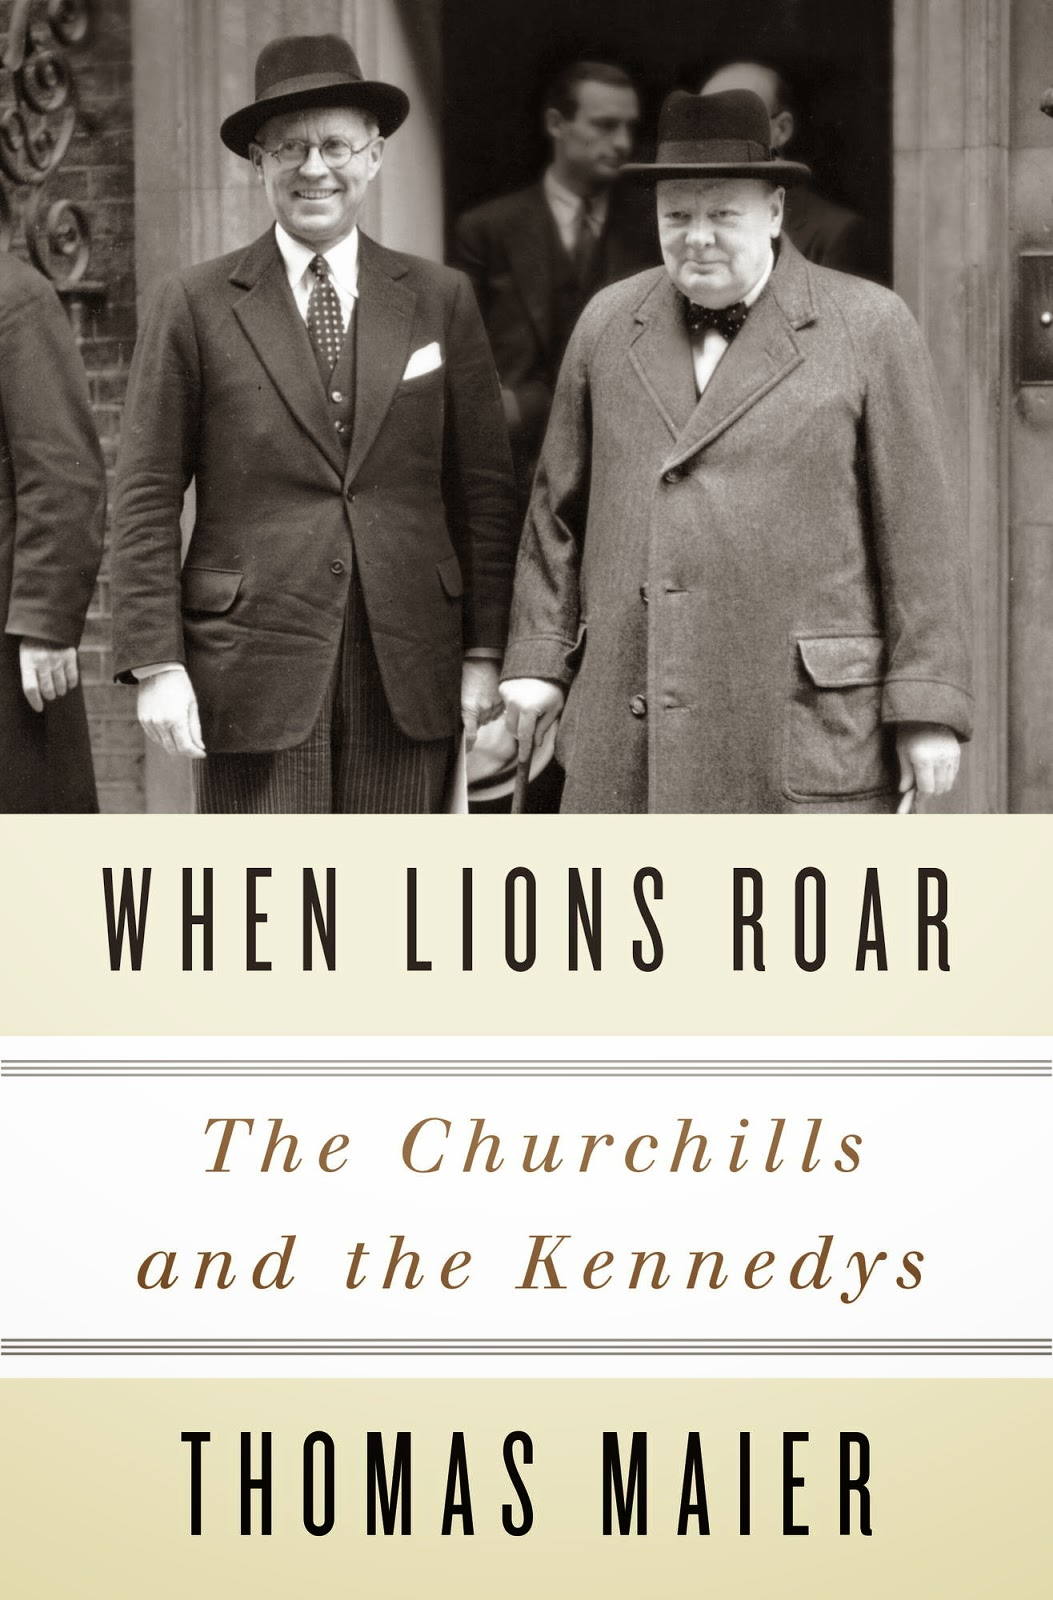 http://discover.halifaxpubliclibraries.ca/?q=title:when%20lions%20roar%20the%20churchills